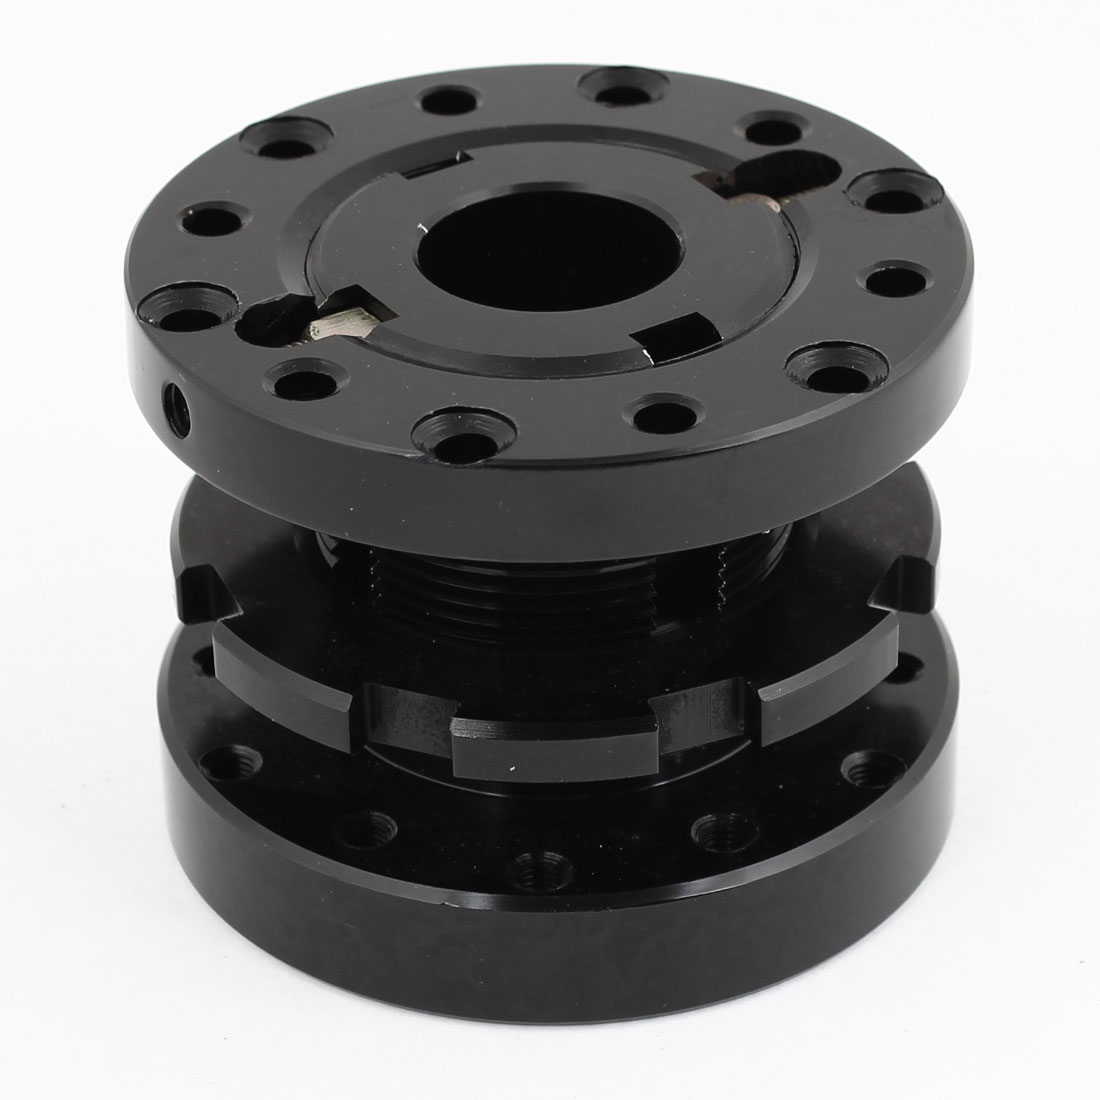 Universal Adjustable Steering Wheel Hub Adapter Spacer Black for Car